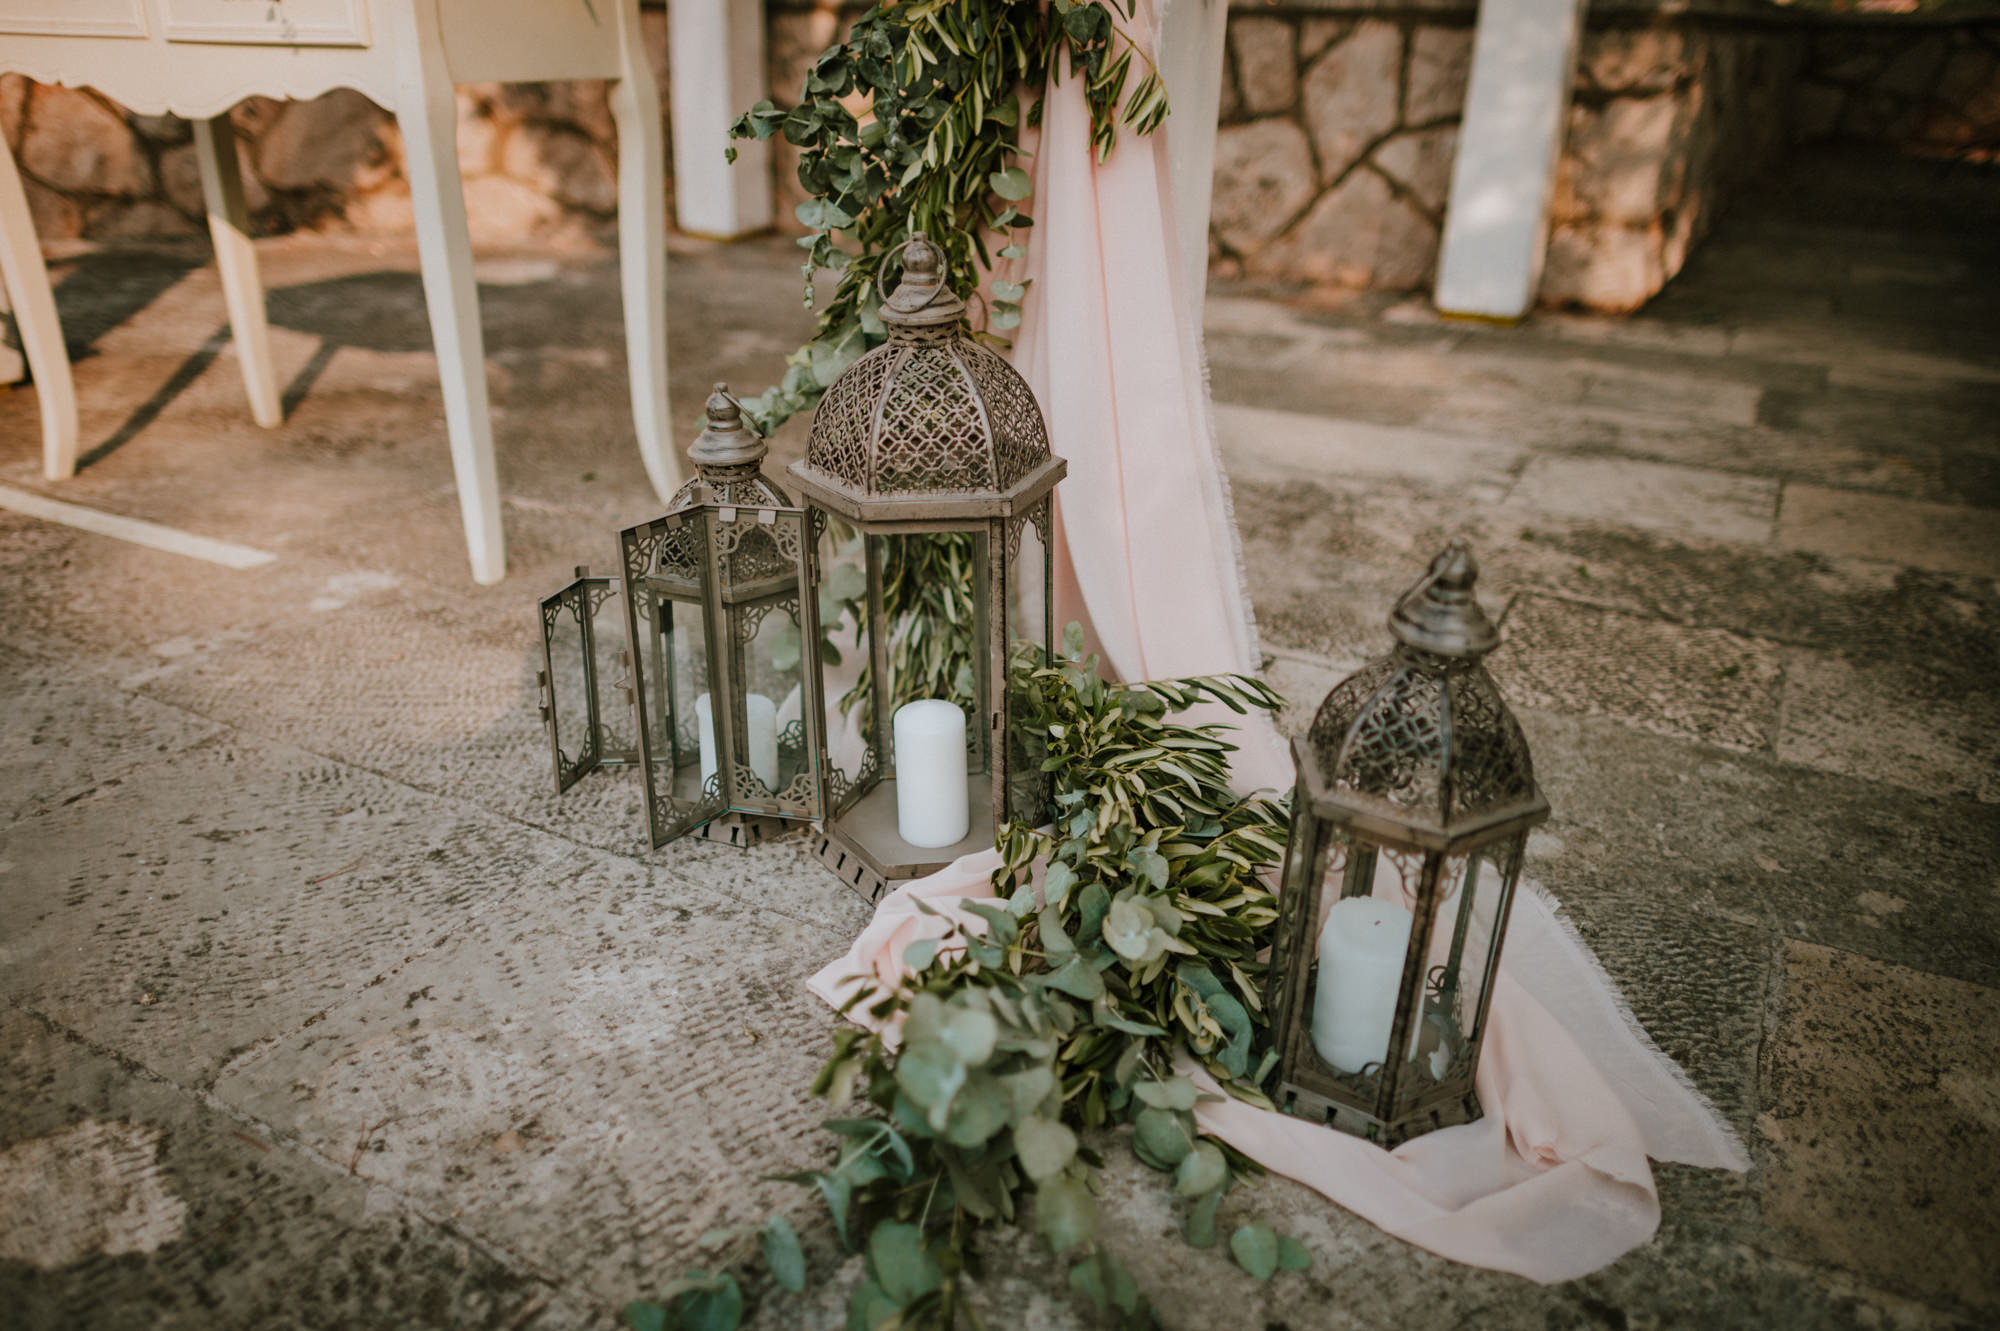 An image of a ceremony set up at Villa Ruza restaurant on Kolocep island off the coast of Dubrovnik. Louis chairs, an arch and a white curtain with greenery on it. We can also see bird cages and pink roses.